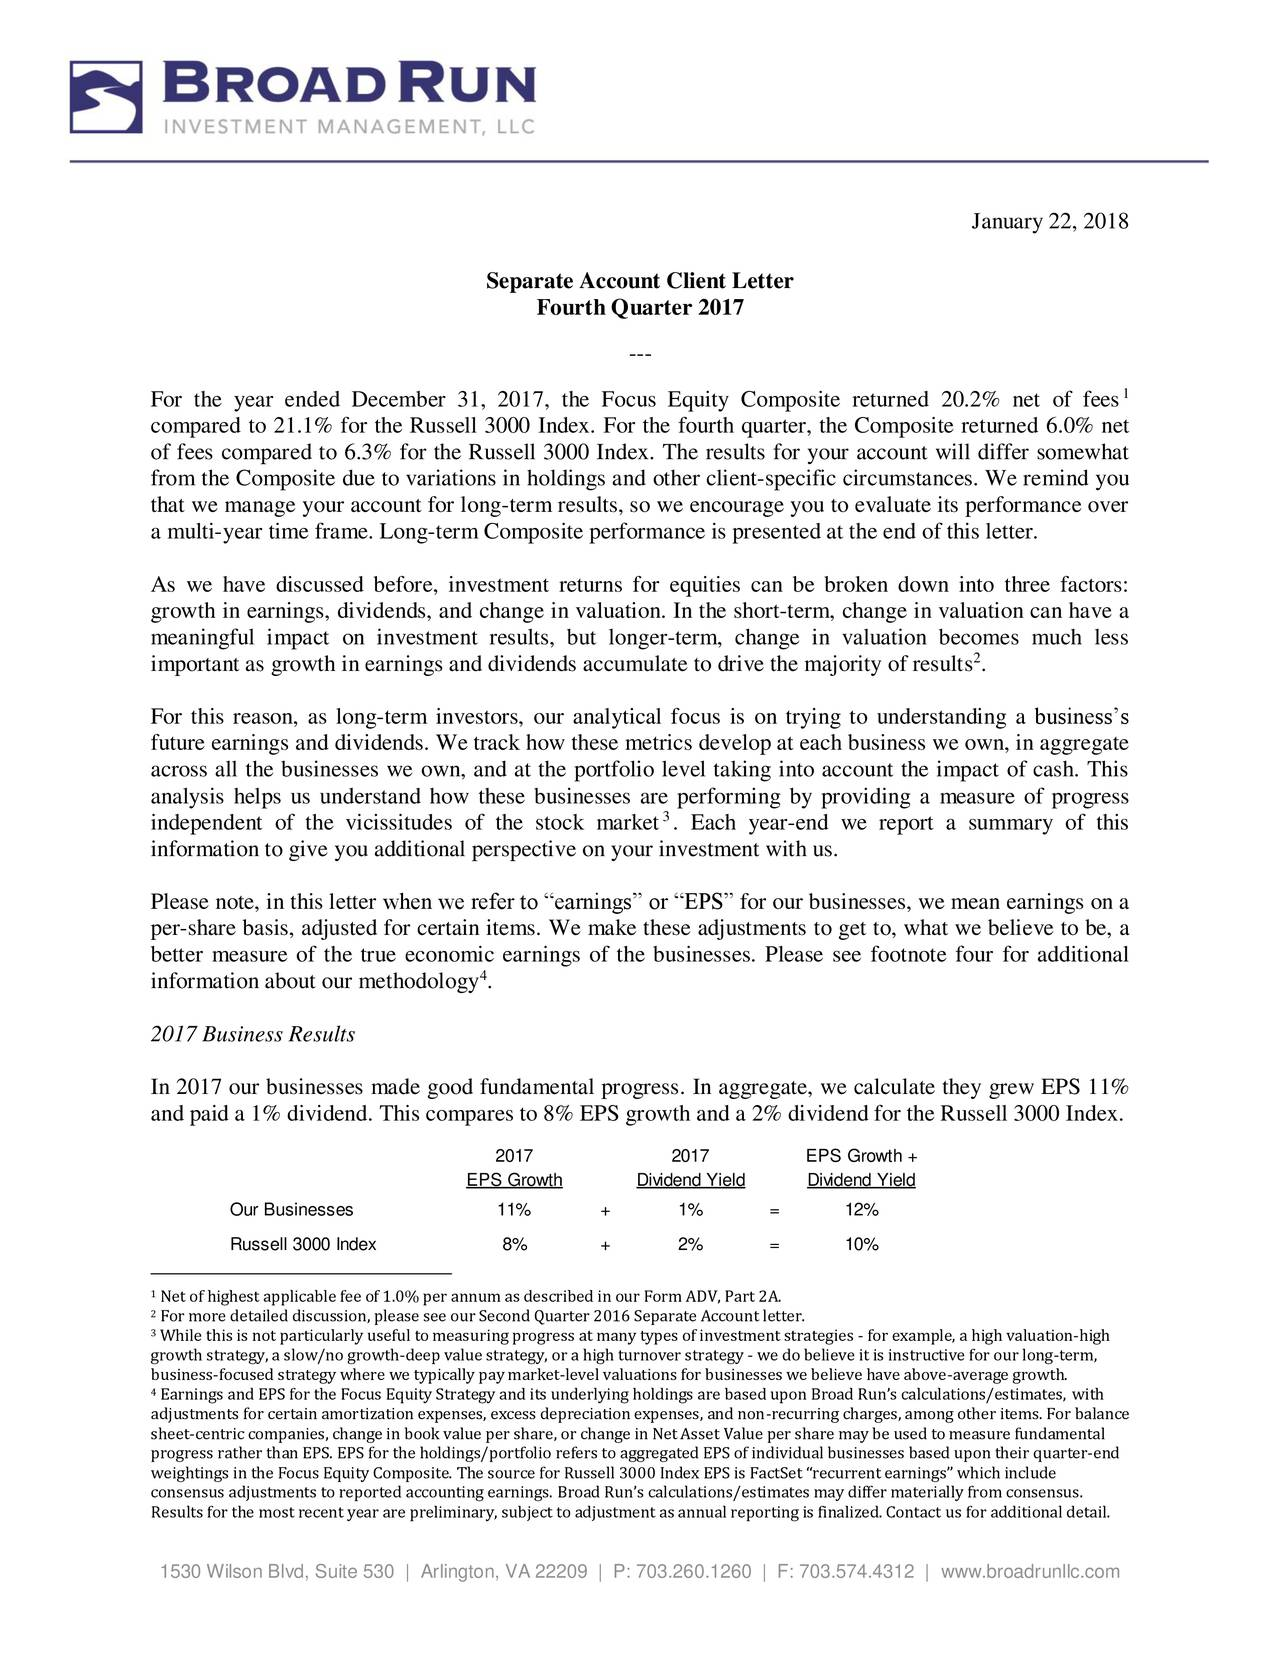 Broad Run Investment Management Llc Separate Account Client Letter